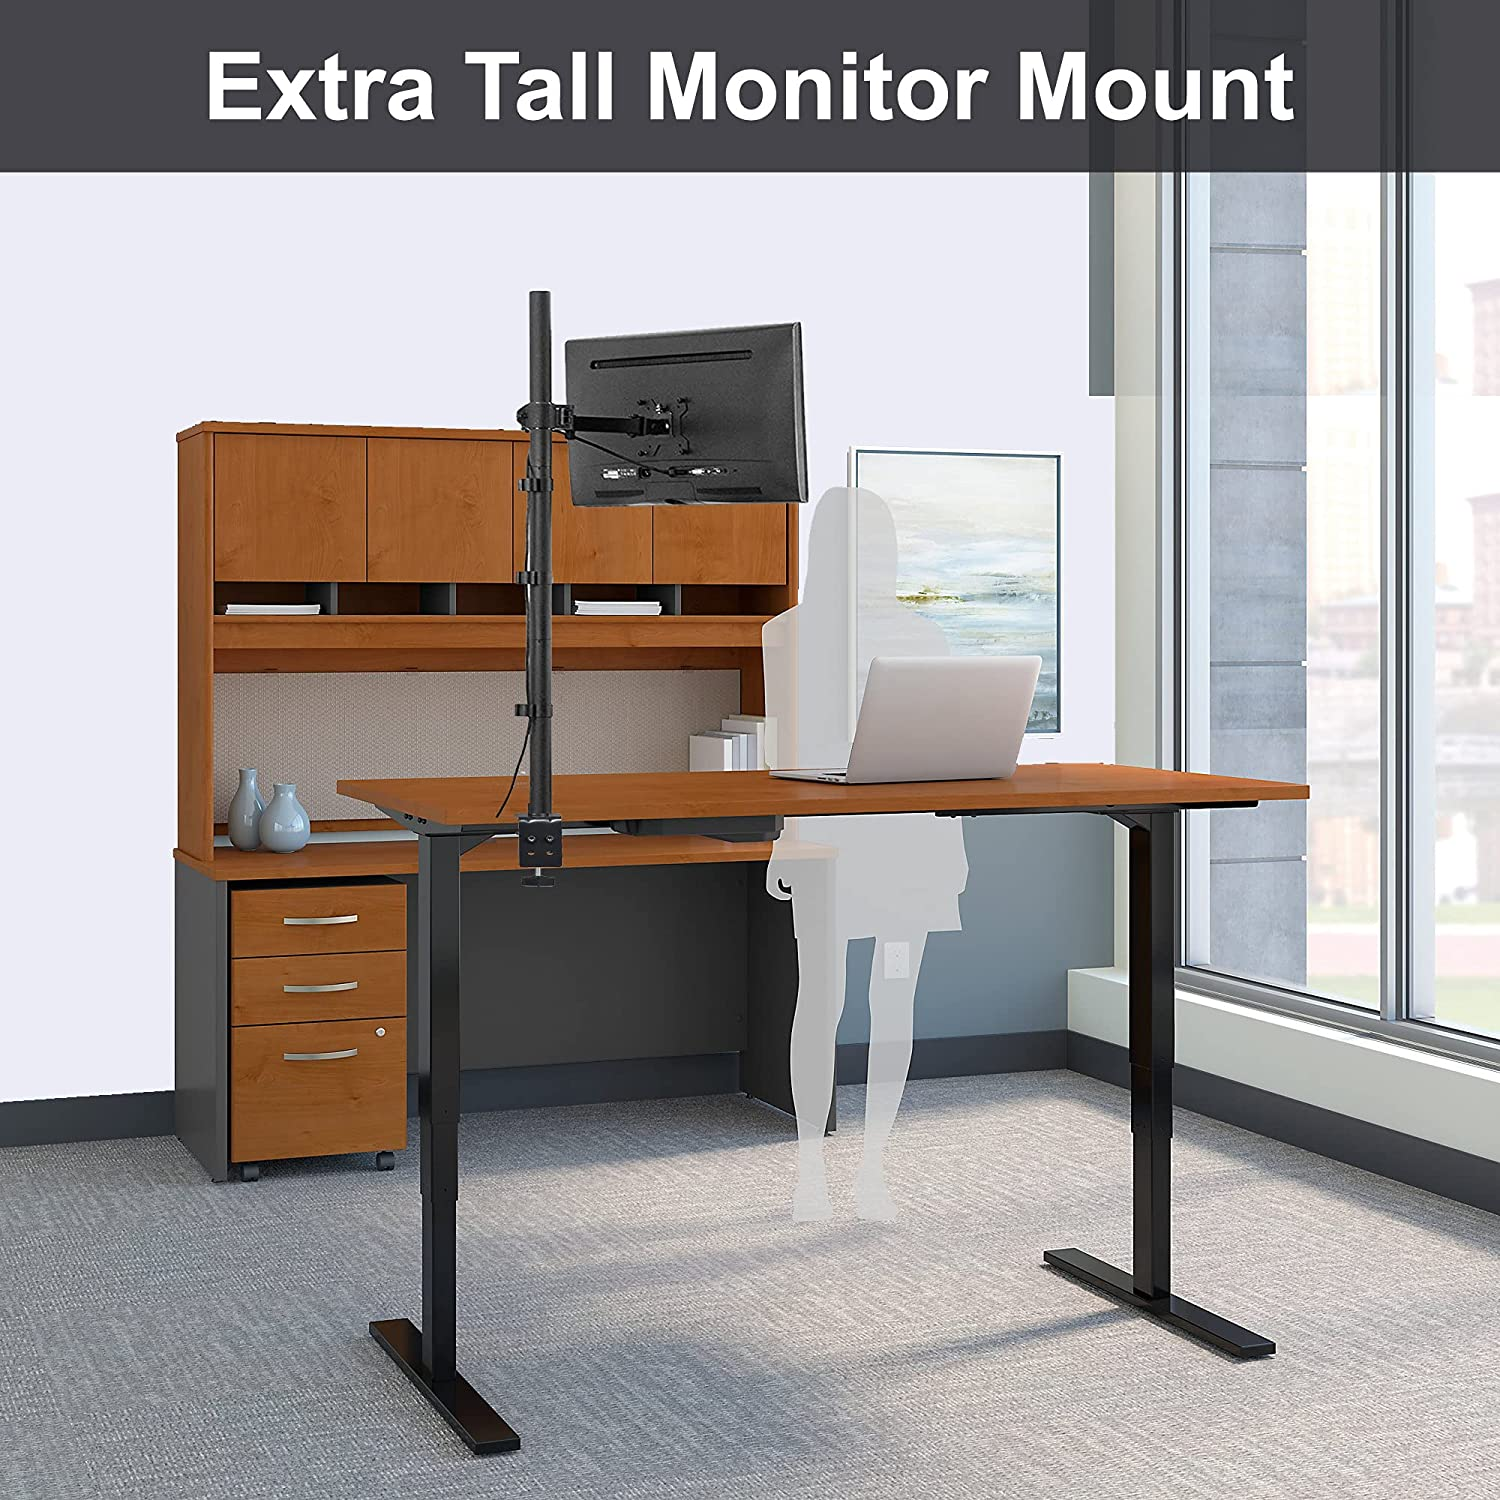 FORGING MOUNT Extra Tall Single Monitor Arm Stand Desk Mount with 39.5 inch Stand-up Pole, Fully Adjustable Stand with C Clamp/Grommet Mounting Base Fits 13-32 Inch Computer Screen, Holds up to 22lbs